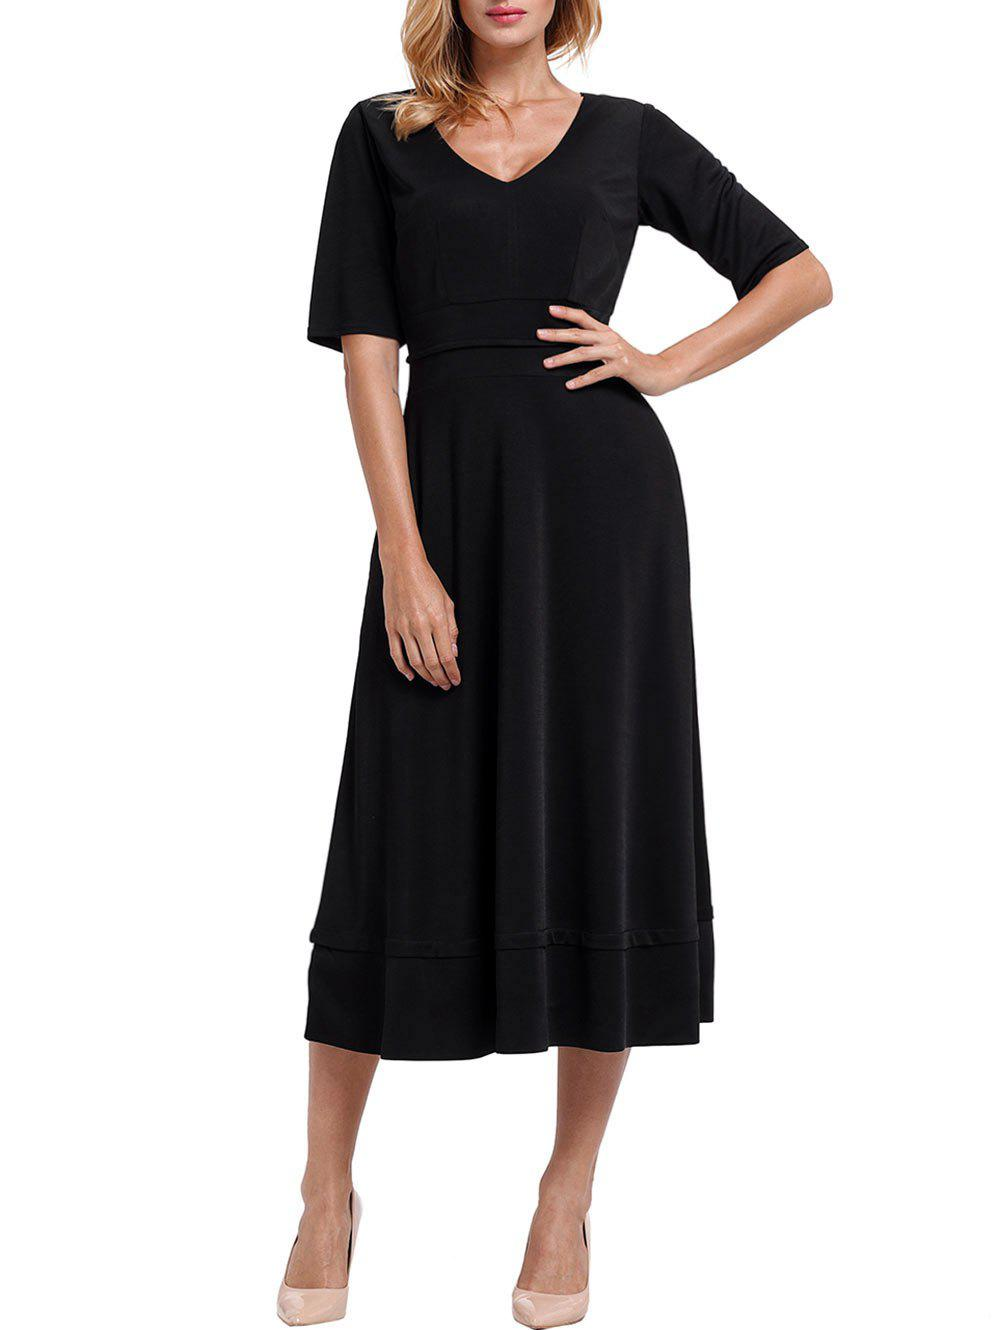 V Neck Half Sleeve Tea Length Dress - BLACK M